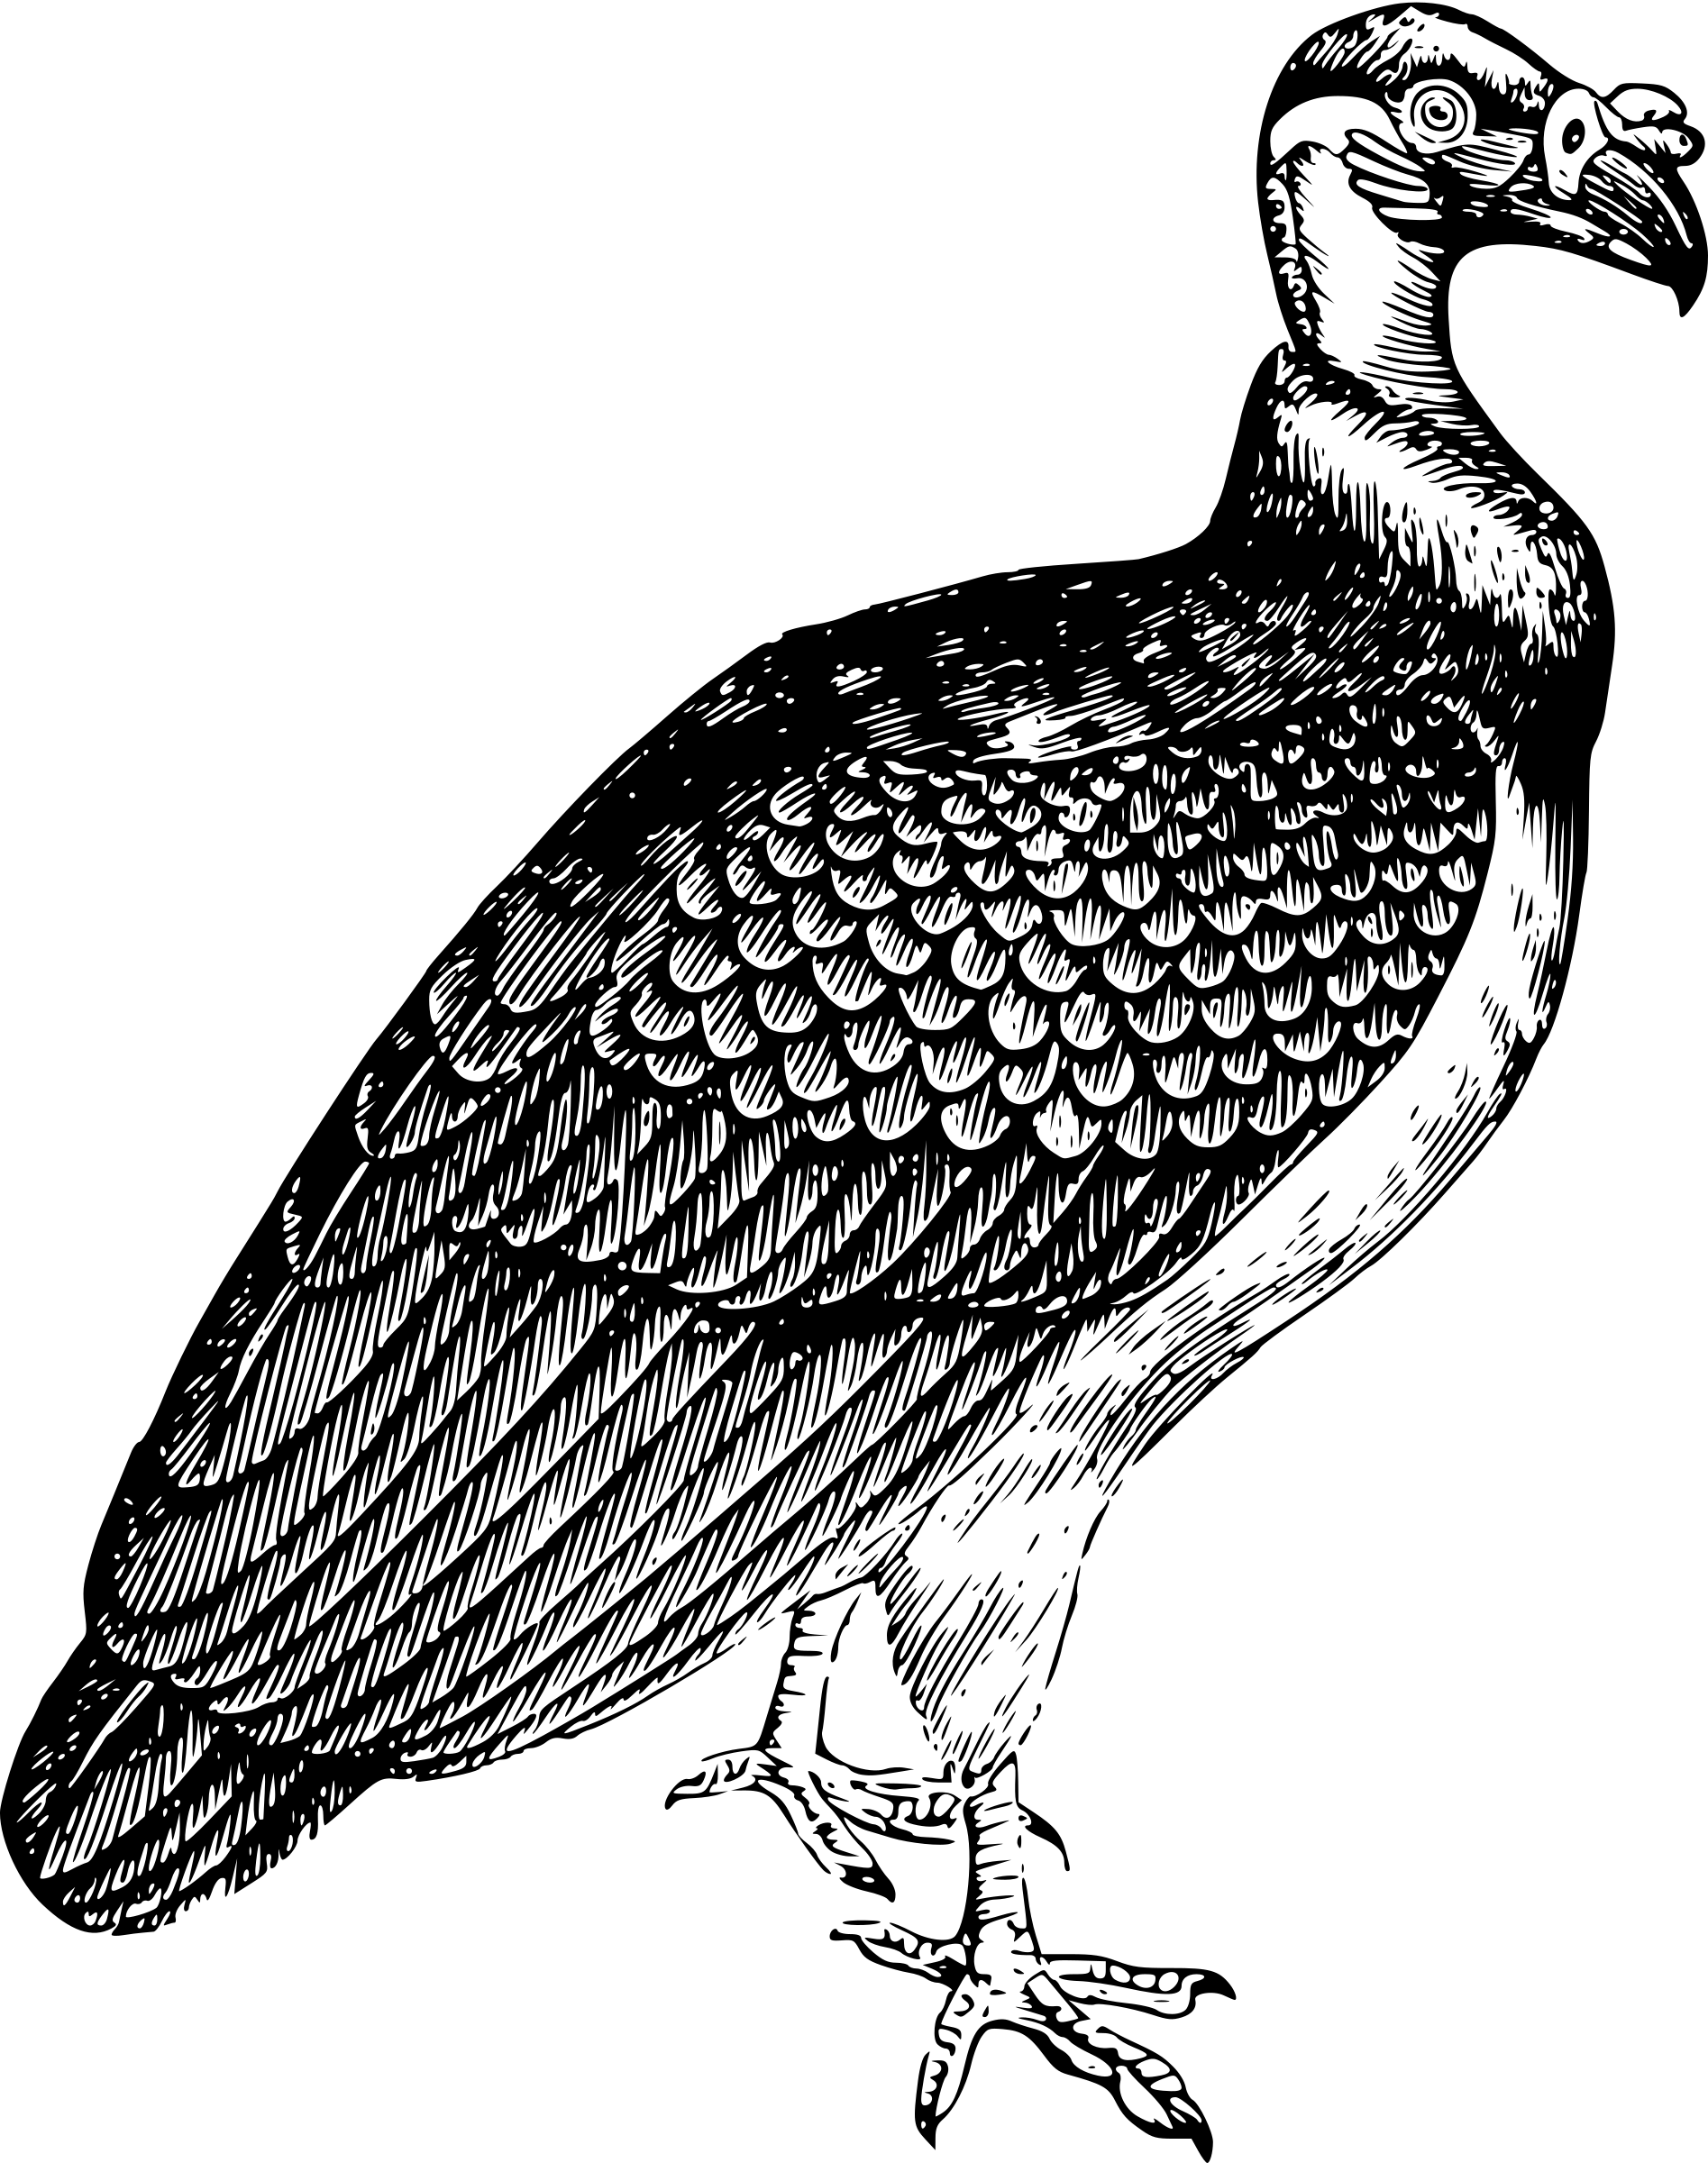 Turkey vulture clipart black and white png royalty free stock Vultures transparent PNG images - StickPNG png royalty free stock